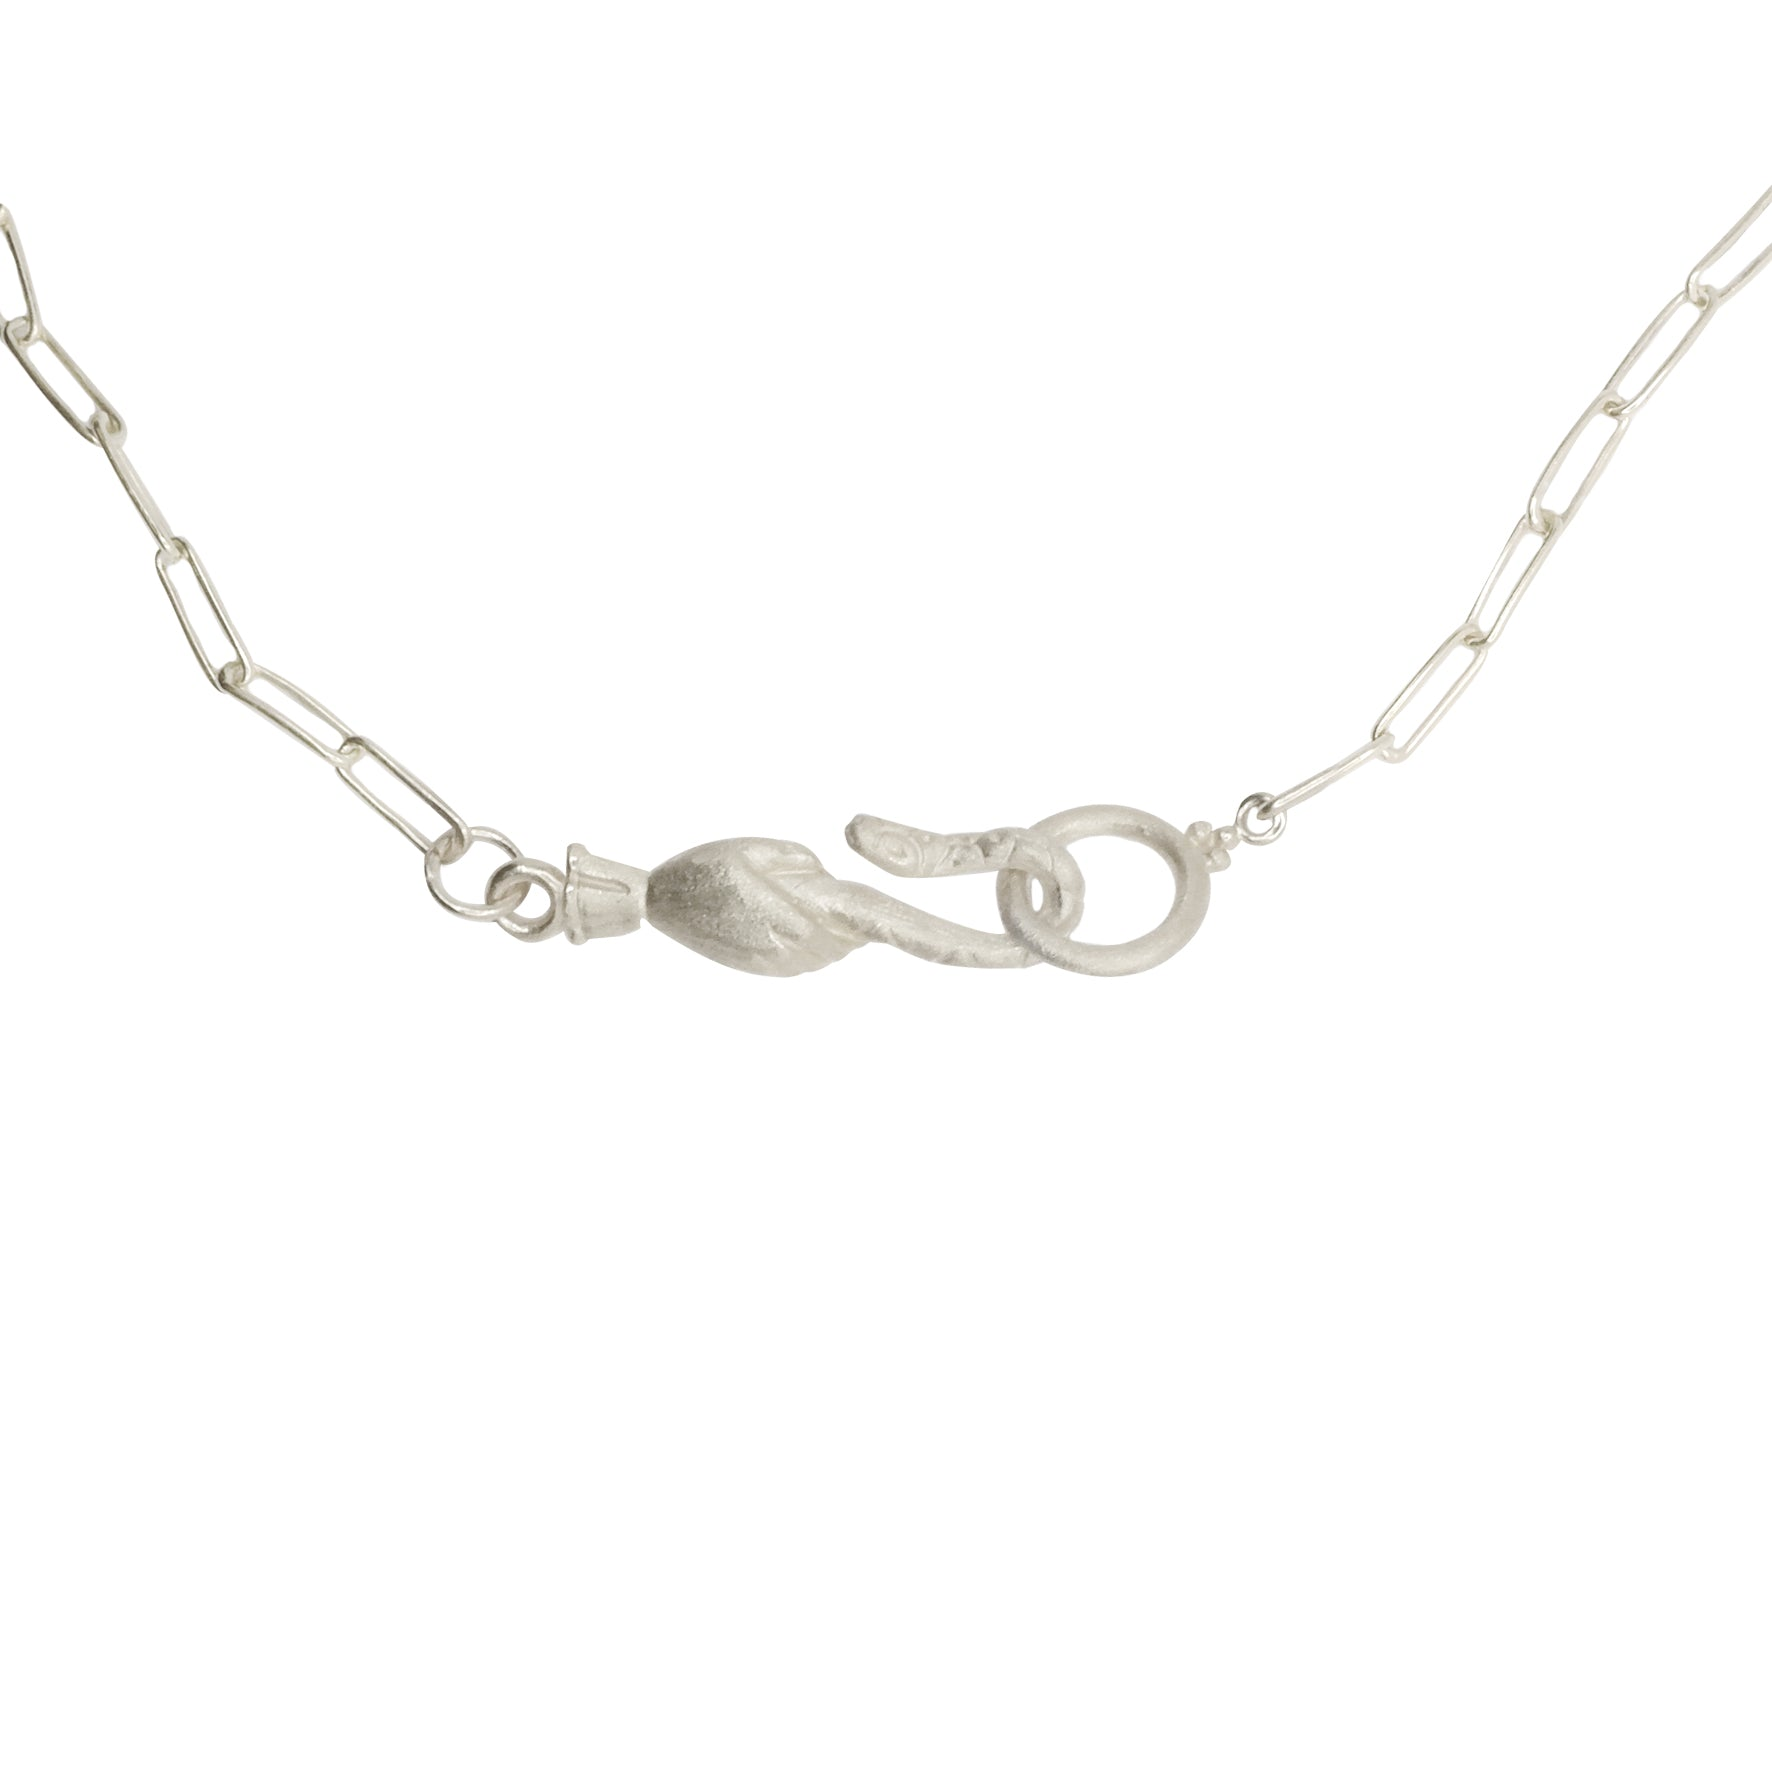 Hunt Of Hounds Serpent Hook Clip Chain Necklace. House made clip chain and signature hook. A hand holding a serpent.